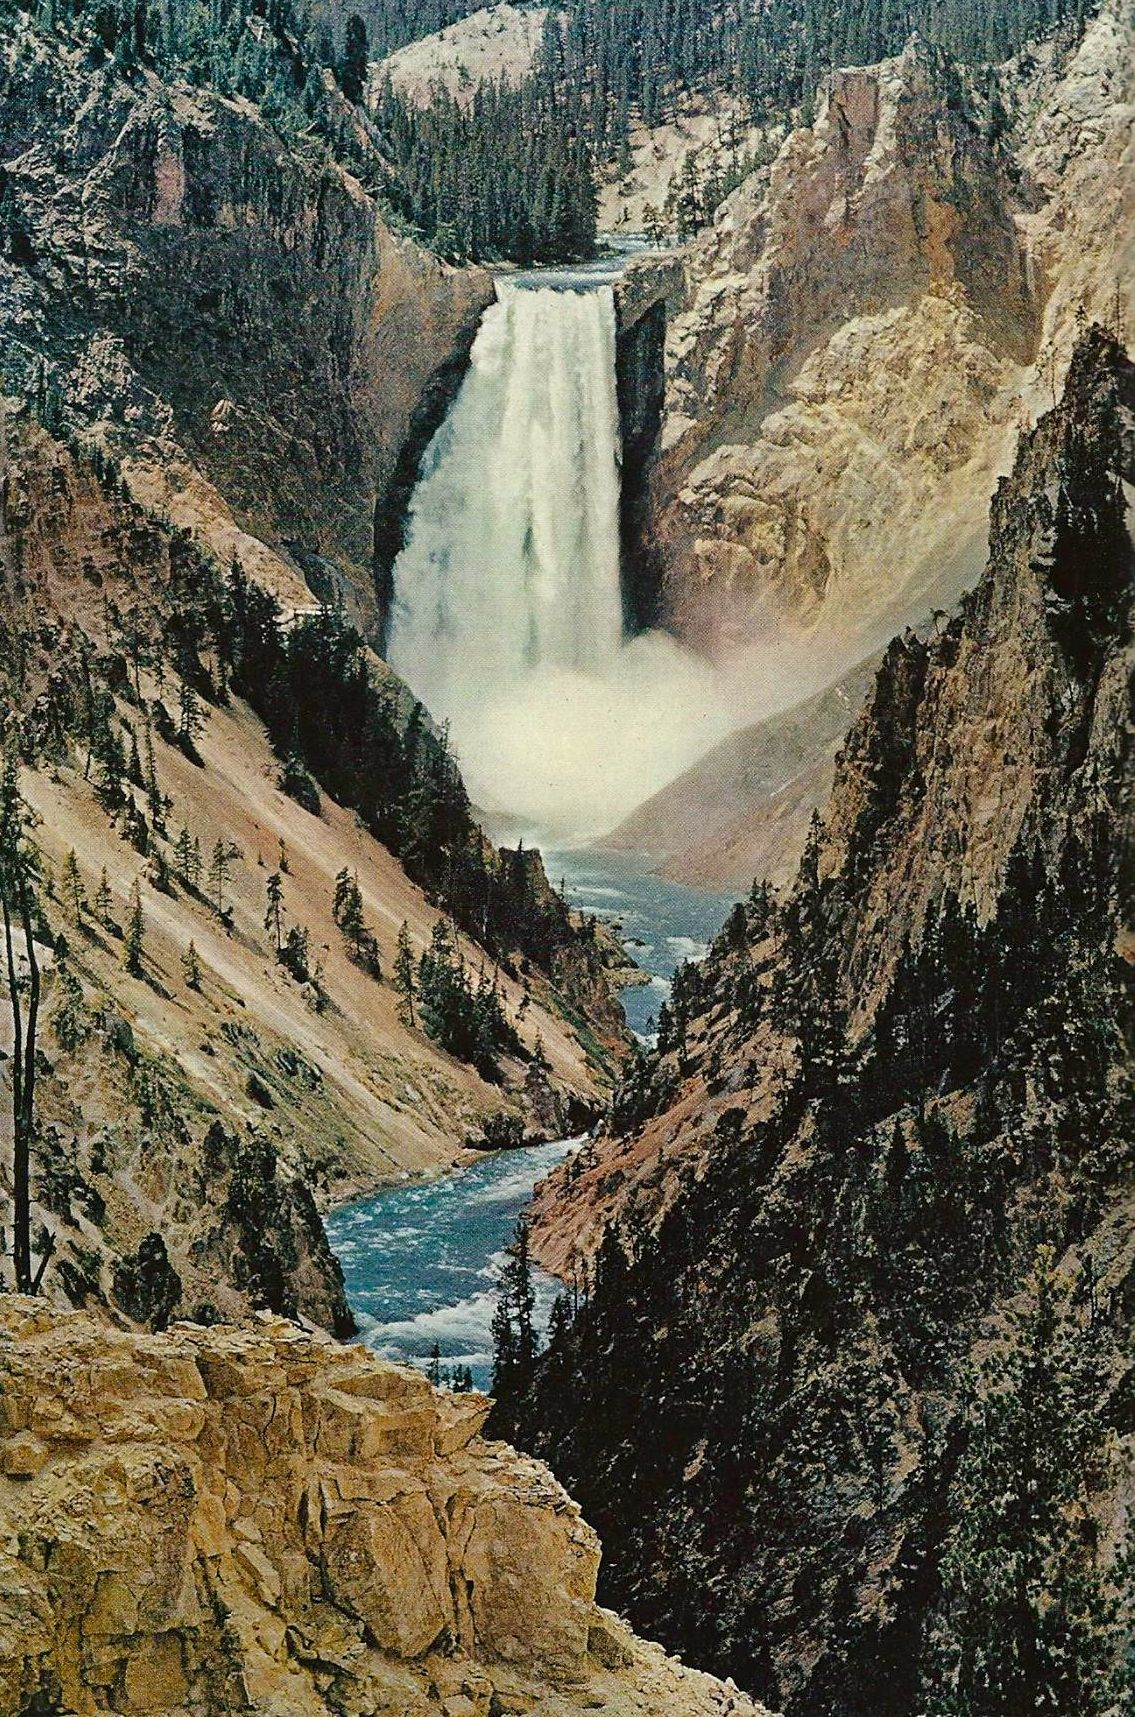 Lower Falls Of The Yellowstone River Wyoming National Geographic December 1965 National Geographic Photography Natural Geographic National Geographic